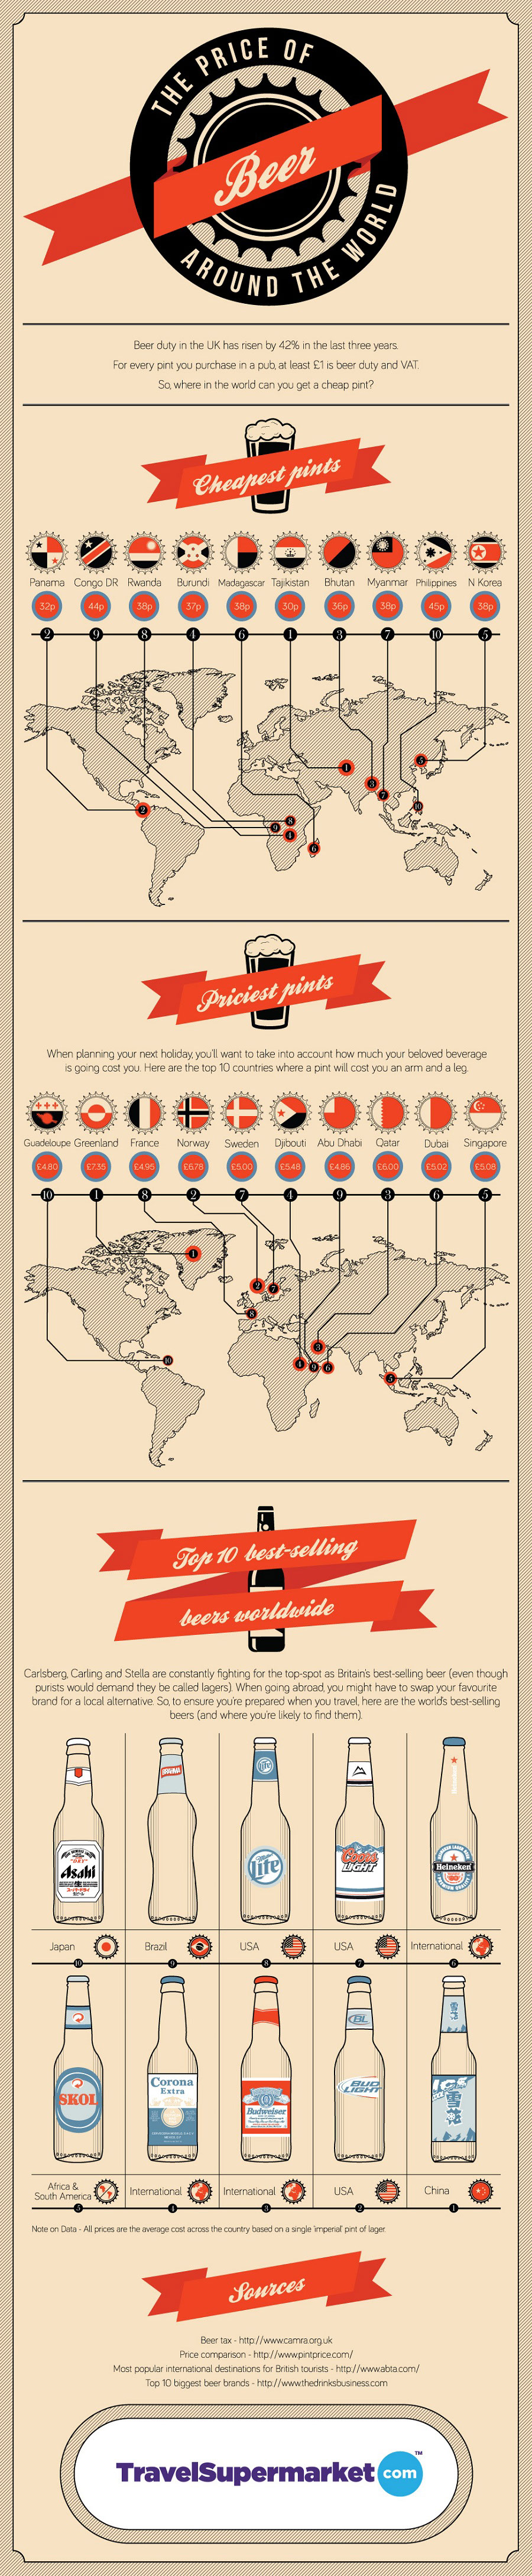 Beer Price Worldwide-Infographic